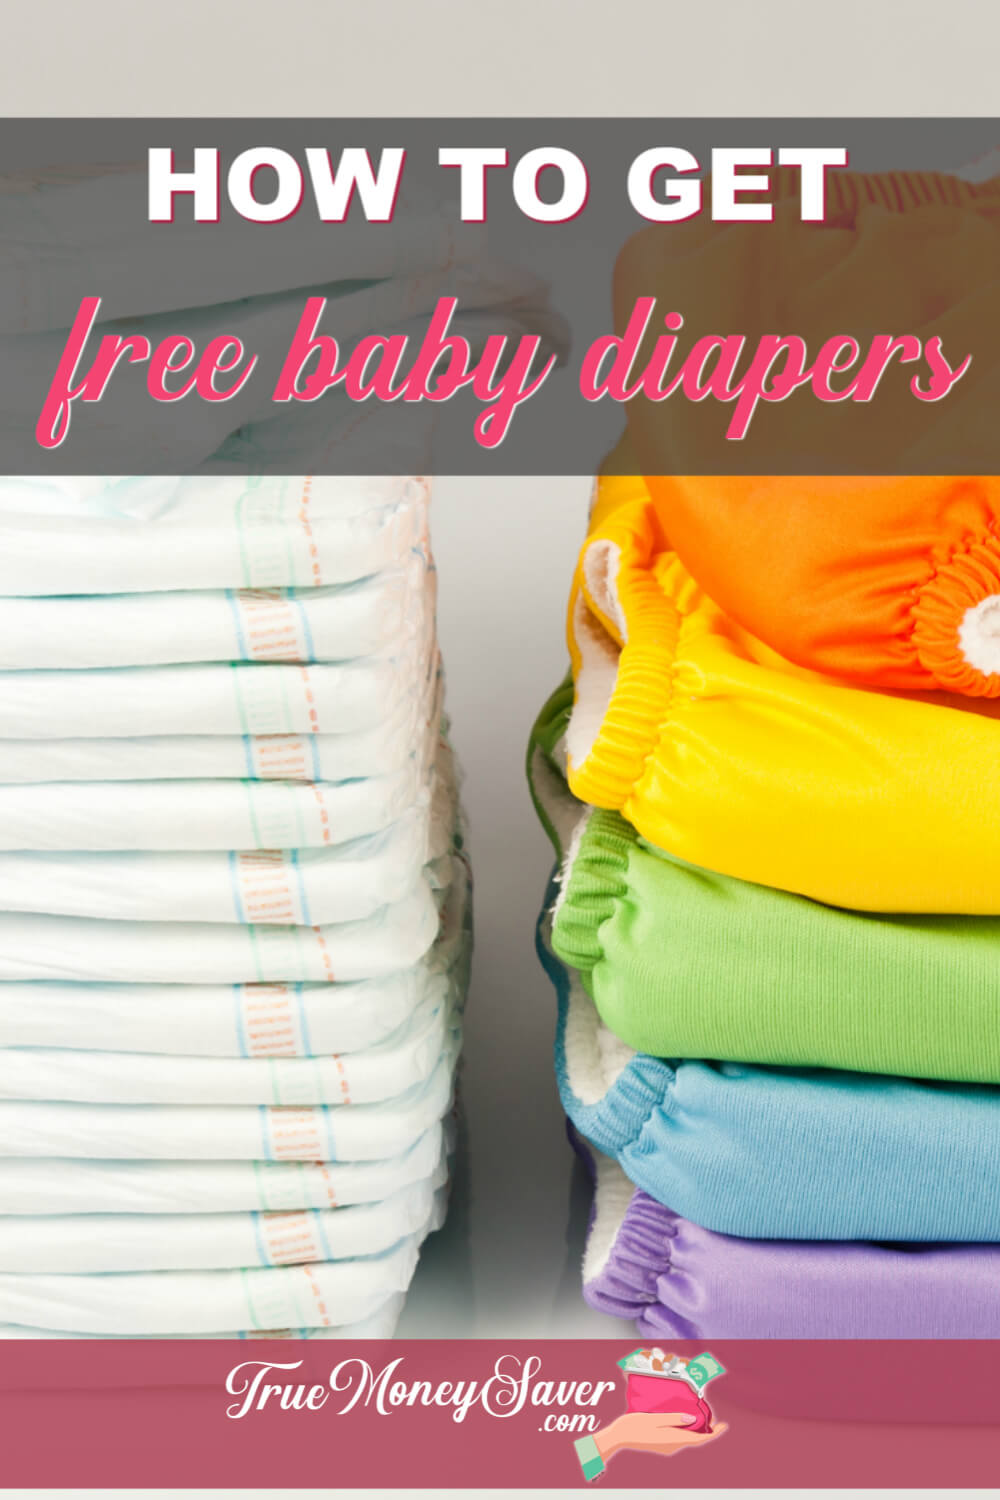 The best diapers are FREE diapers! Start your diaper stash by getting some for FREE! Learn how to get FREE Baby Diapers and save money on your diaper expenses. #truecouponing #diapers